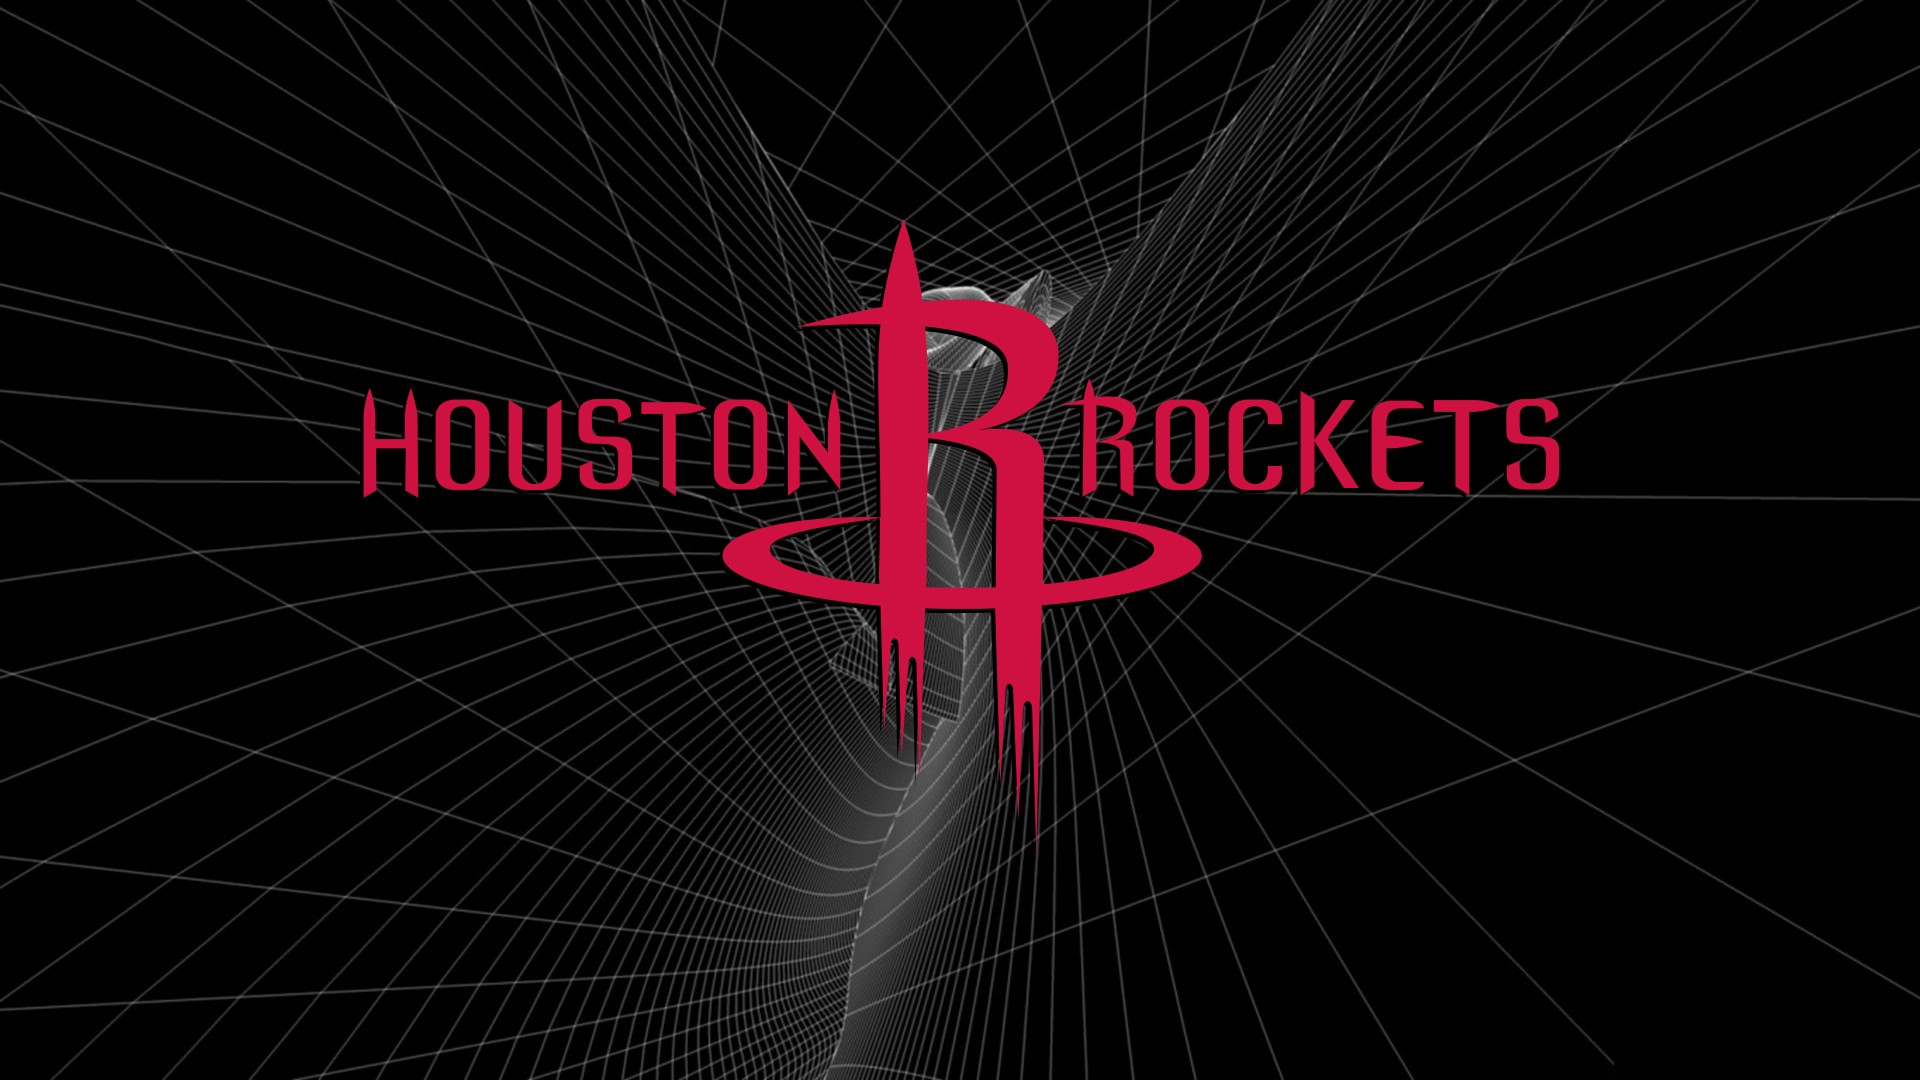 Houston Basketball Backgrounds HD with image dimensions 1920x1080 pixel. You can make this wallpaper for your Desktop Computer Backgrounds, Windows or Mac Screensavers, iPhone Lock screen, Tablet or Android and another Mobile Phone device